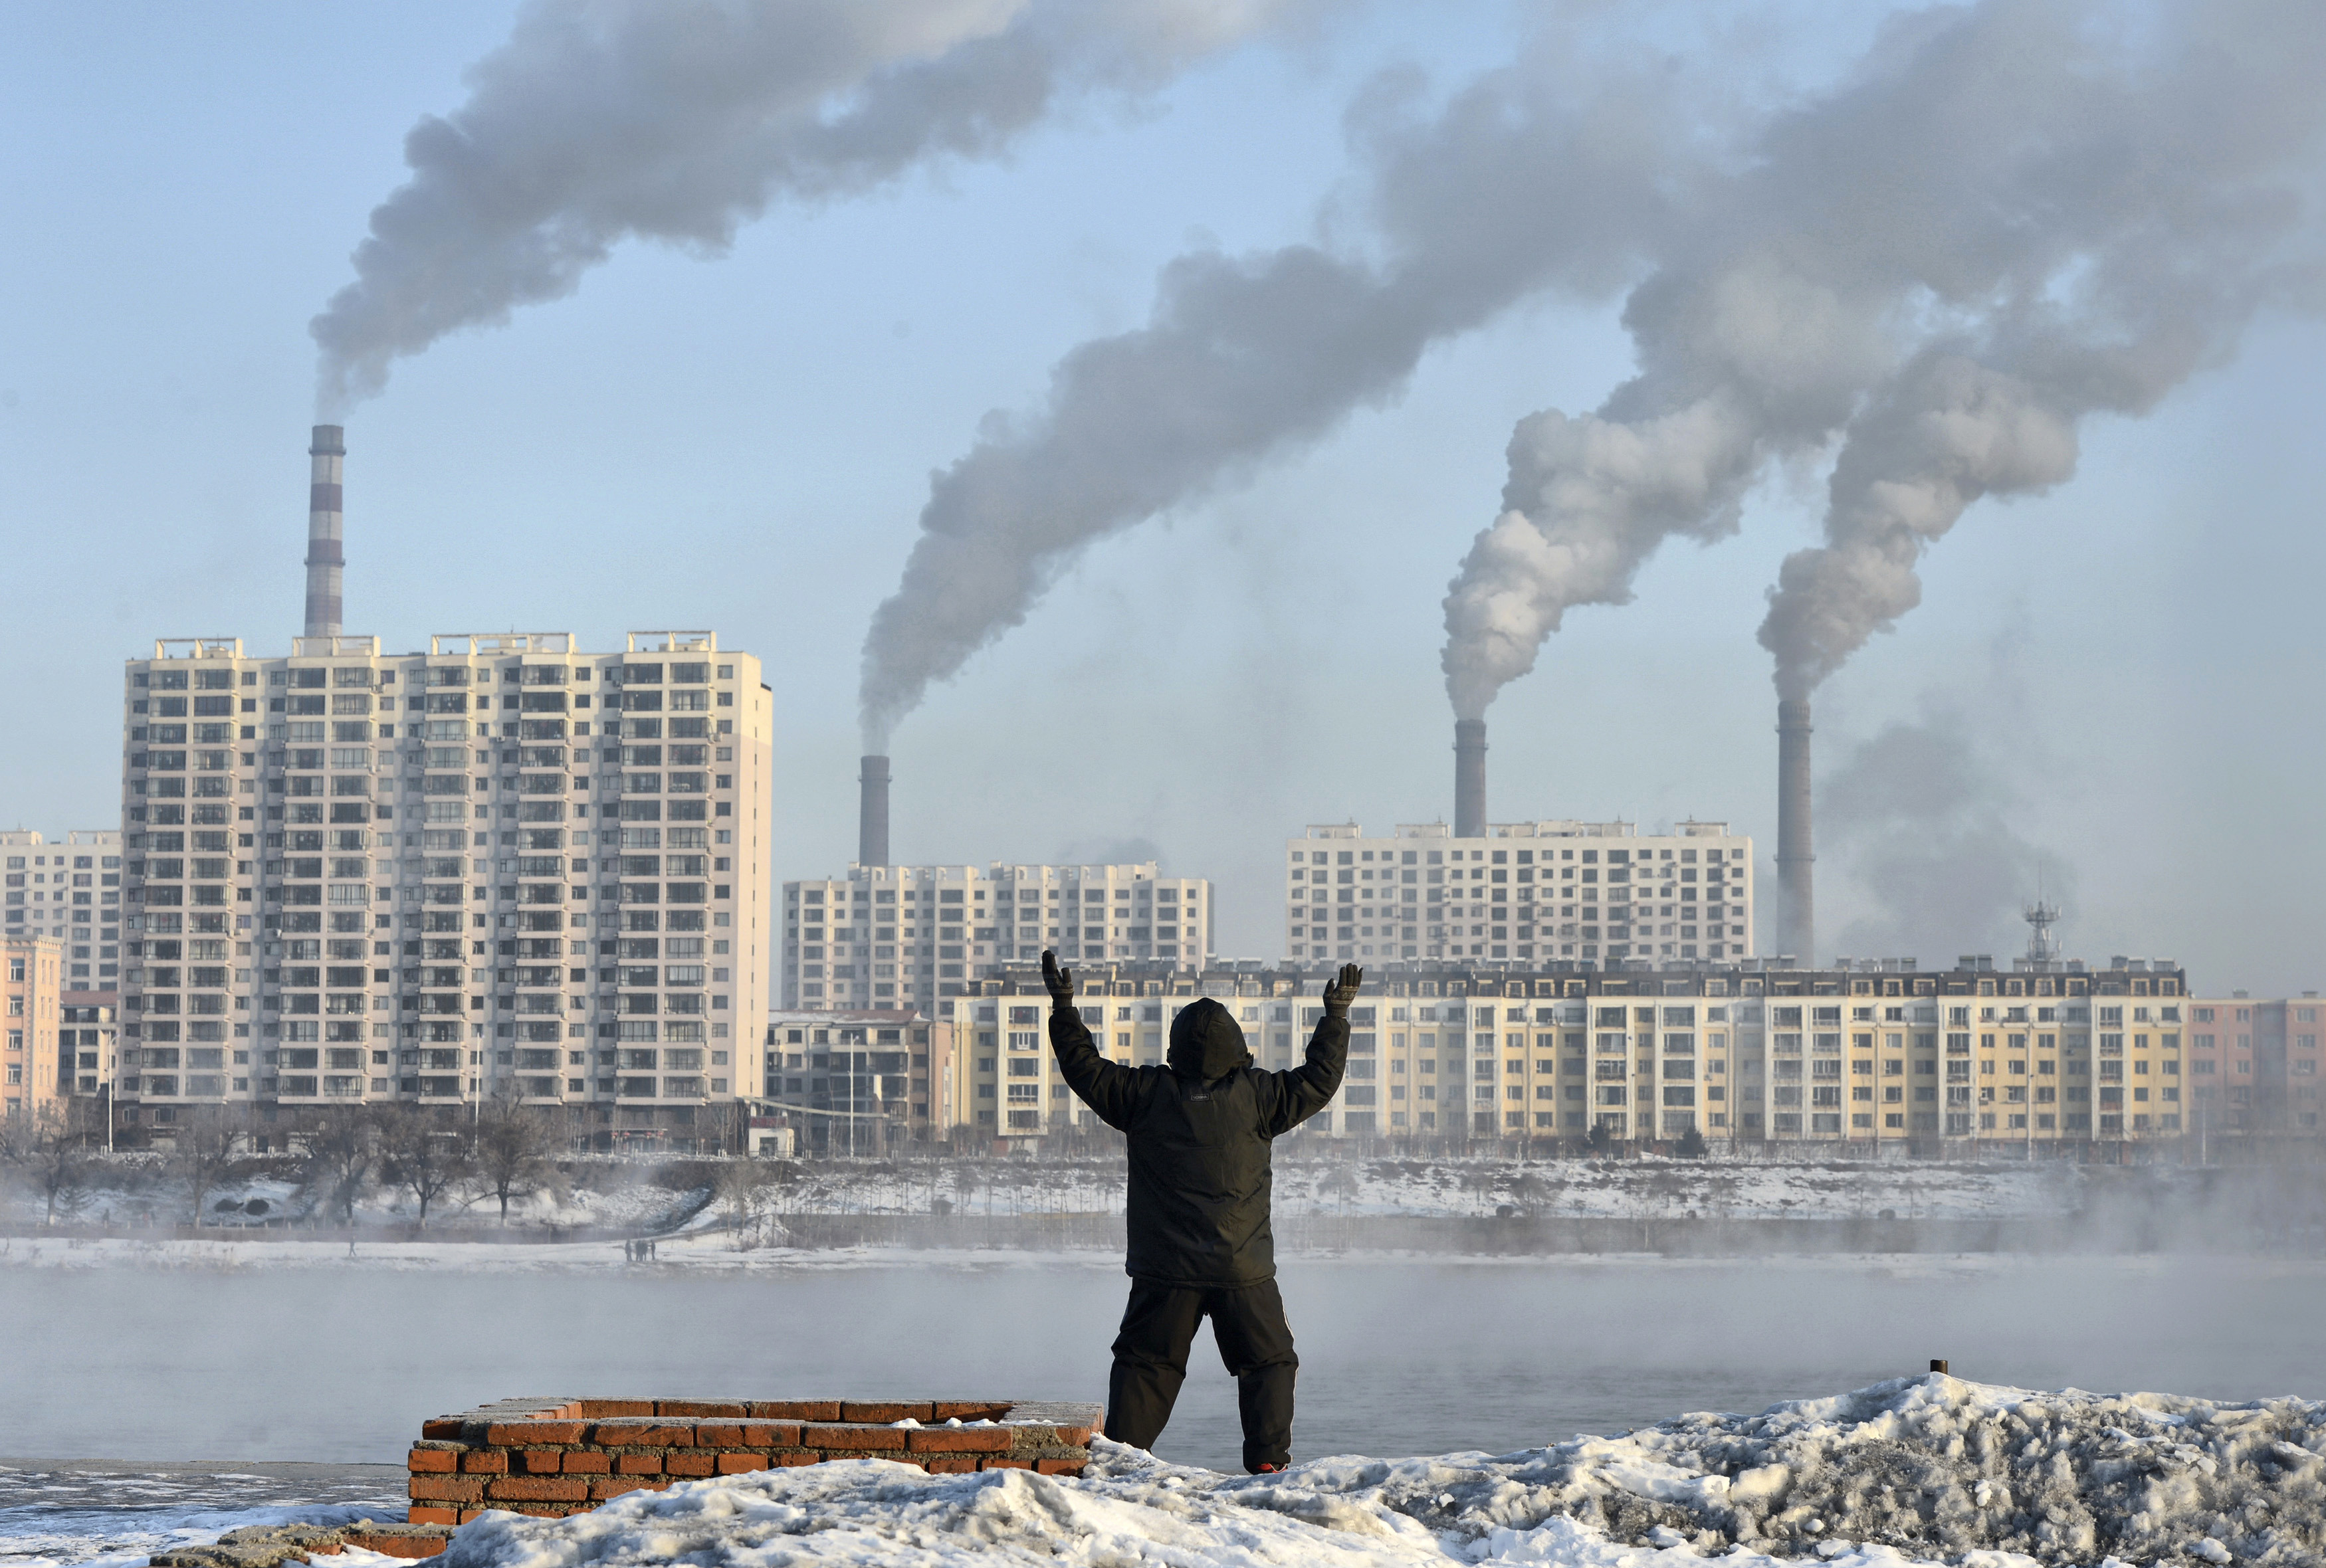 An elderly man exercises in the morning as he faces chimneys emitting smoke behind buildings across the Songhua river in Jilin, Jilin province, February 24, 2013. China's new rulers will focus on consumer-led growth to narrow the gap between rich and poor while taking steps to curb pollution and graft, the government said on Tuesday, tackling the main triggers for social unrest in the giant nation. Picture taken February 24, 2013. REUTERS/Stringer (CHINA - Tags: ENVIRONMENT BUSINESS POLITICS) CHINA OUT. NO COMMERCIAL OR EDITORIAL SALES IN CHINA - GM1E9351DC501